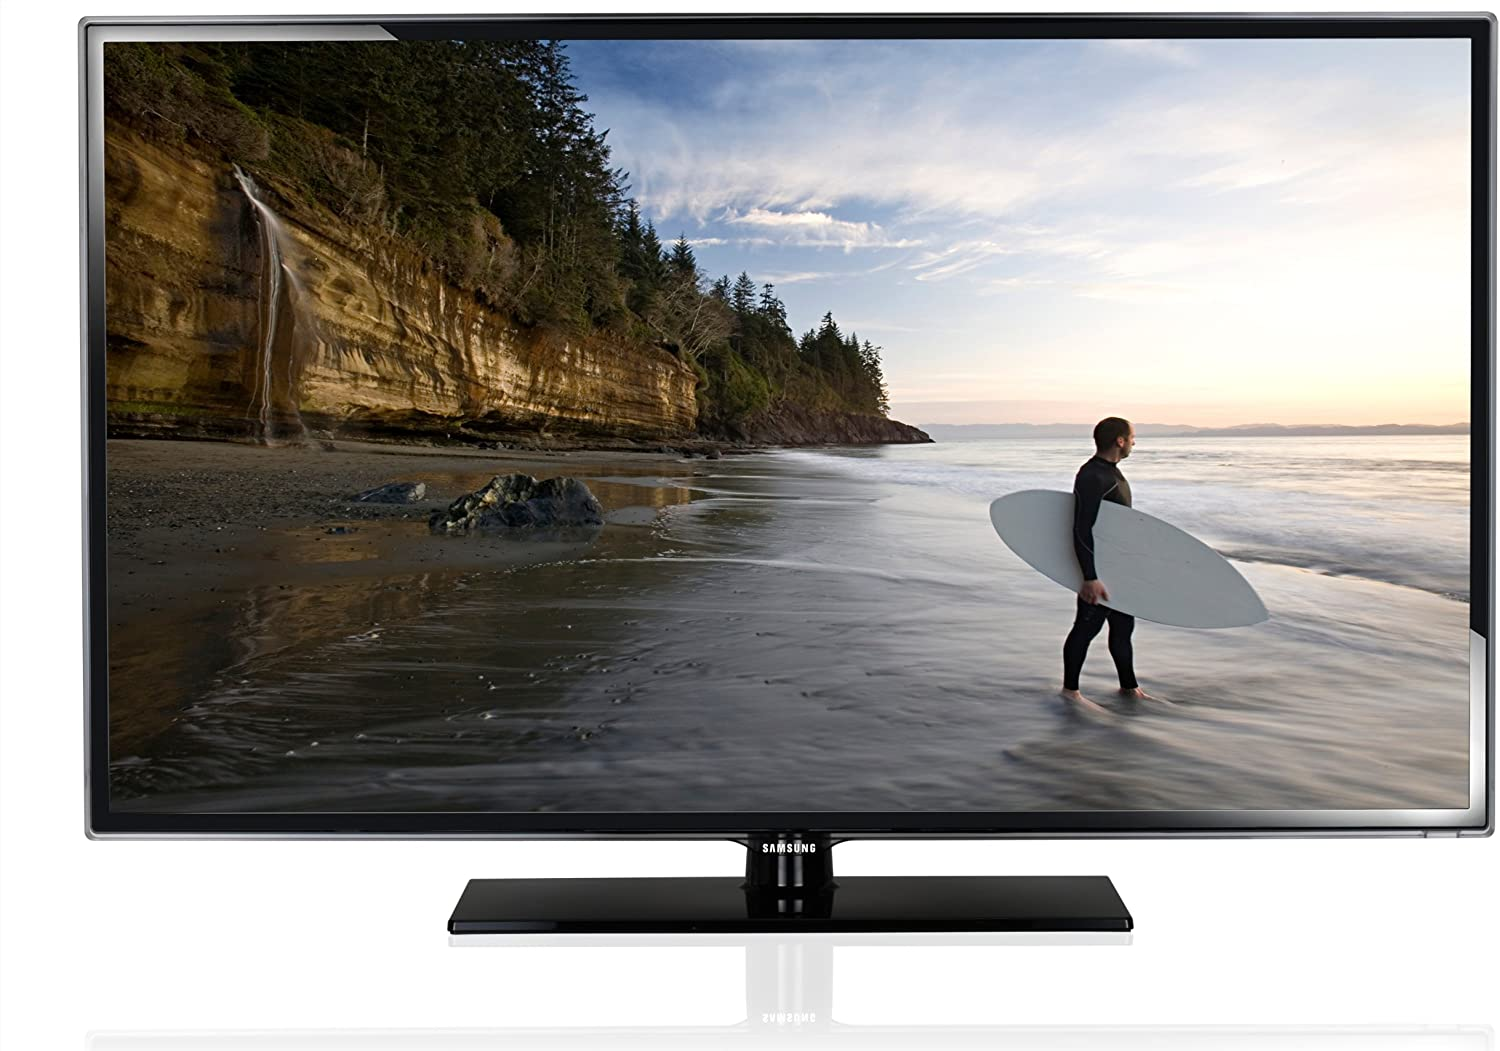 Samsung UE40ES5500 - Televisión LED de 40 pulgadas, Full HD (100 Hz), color negro: Amazon.es: Electrónica